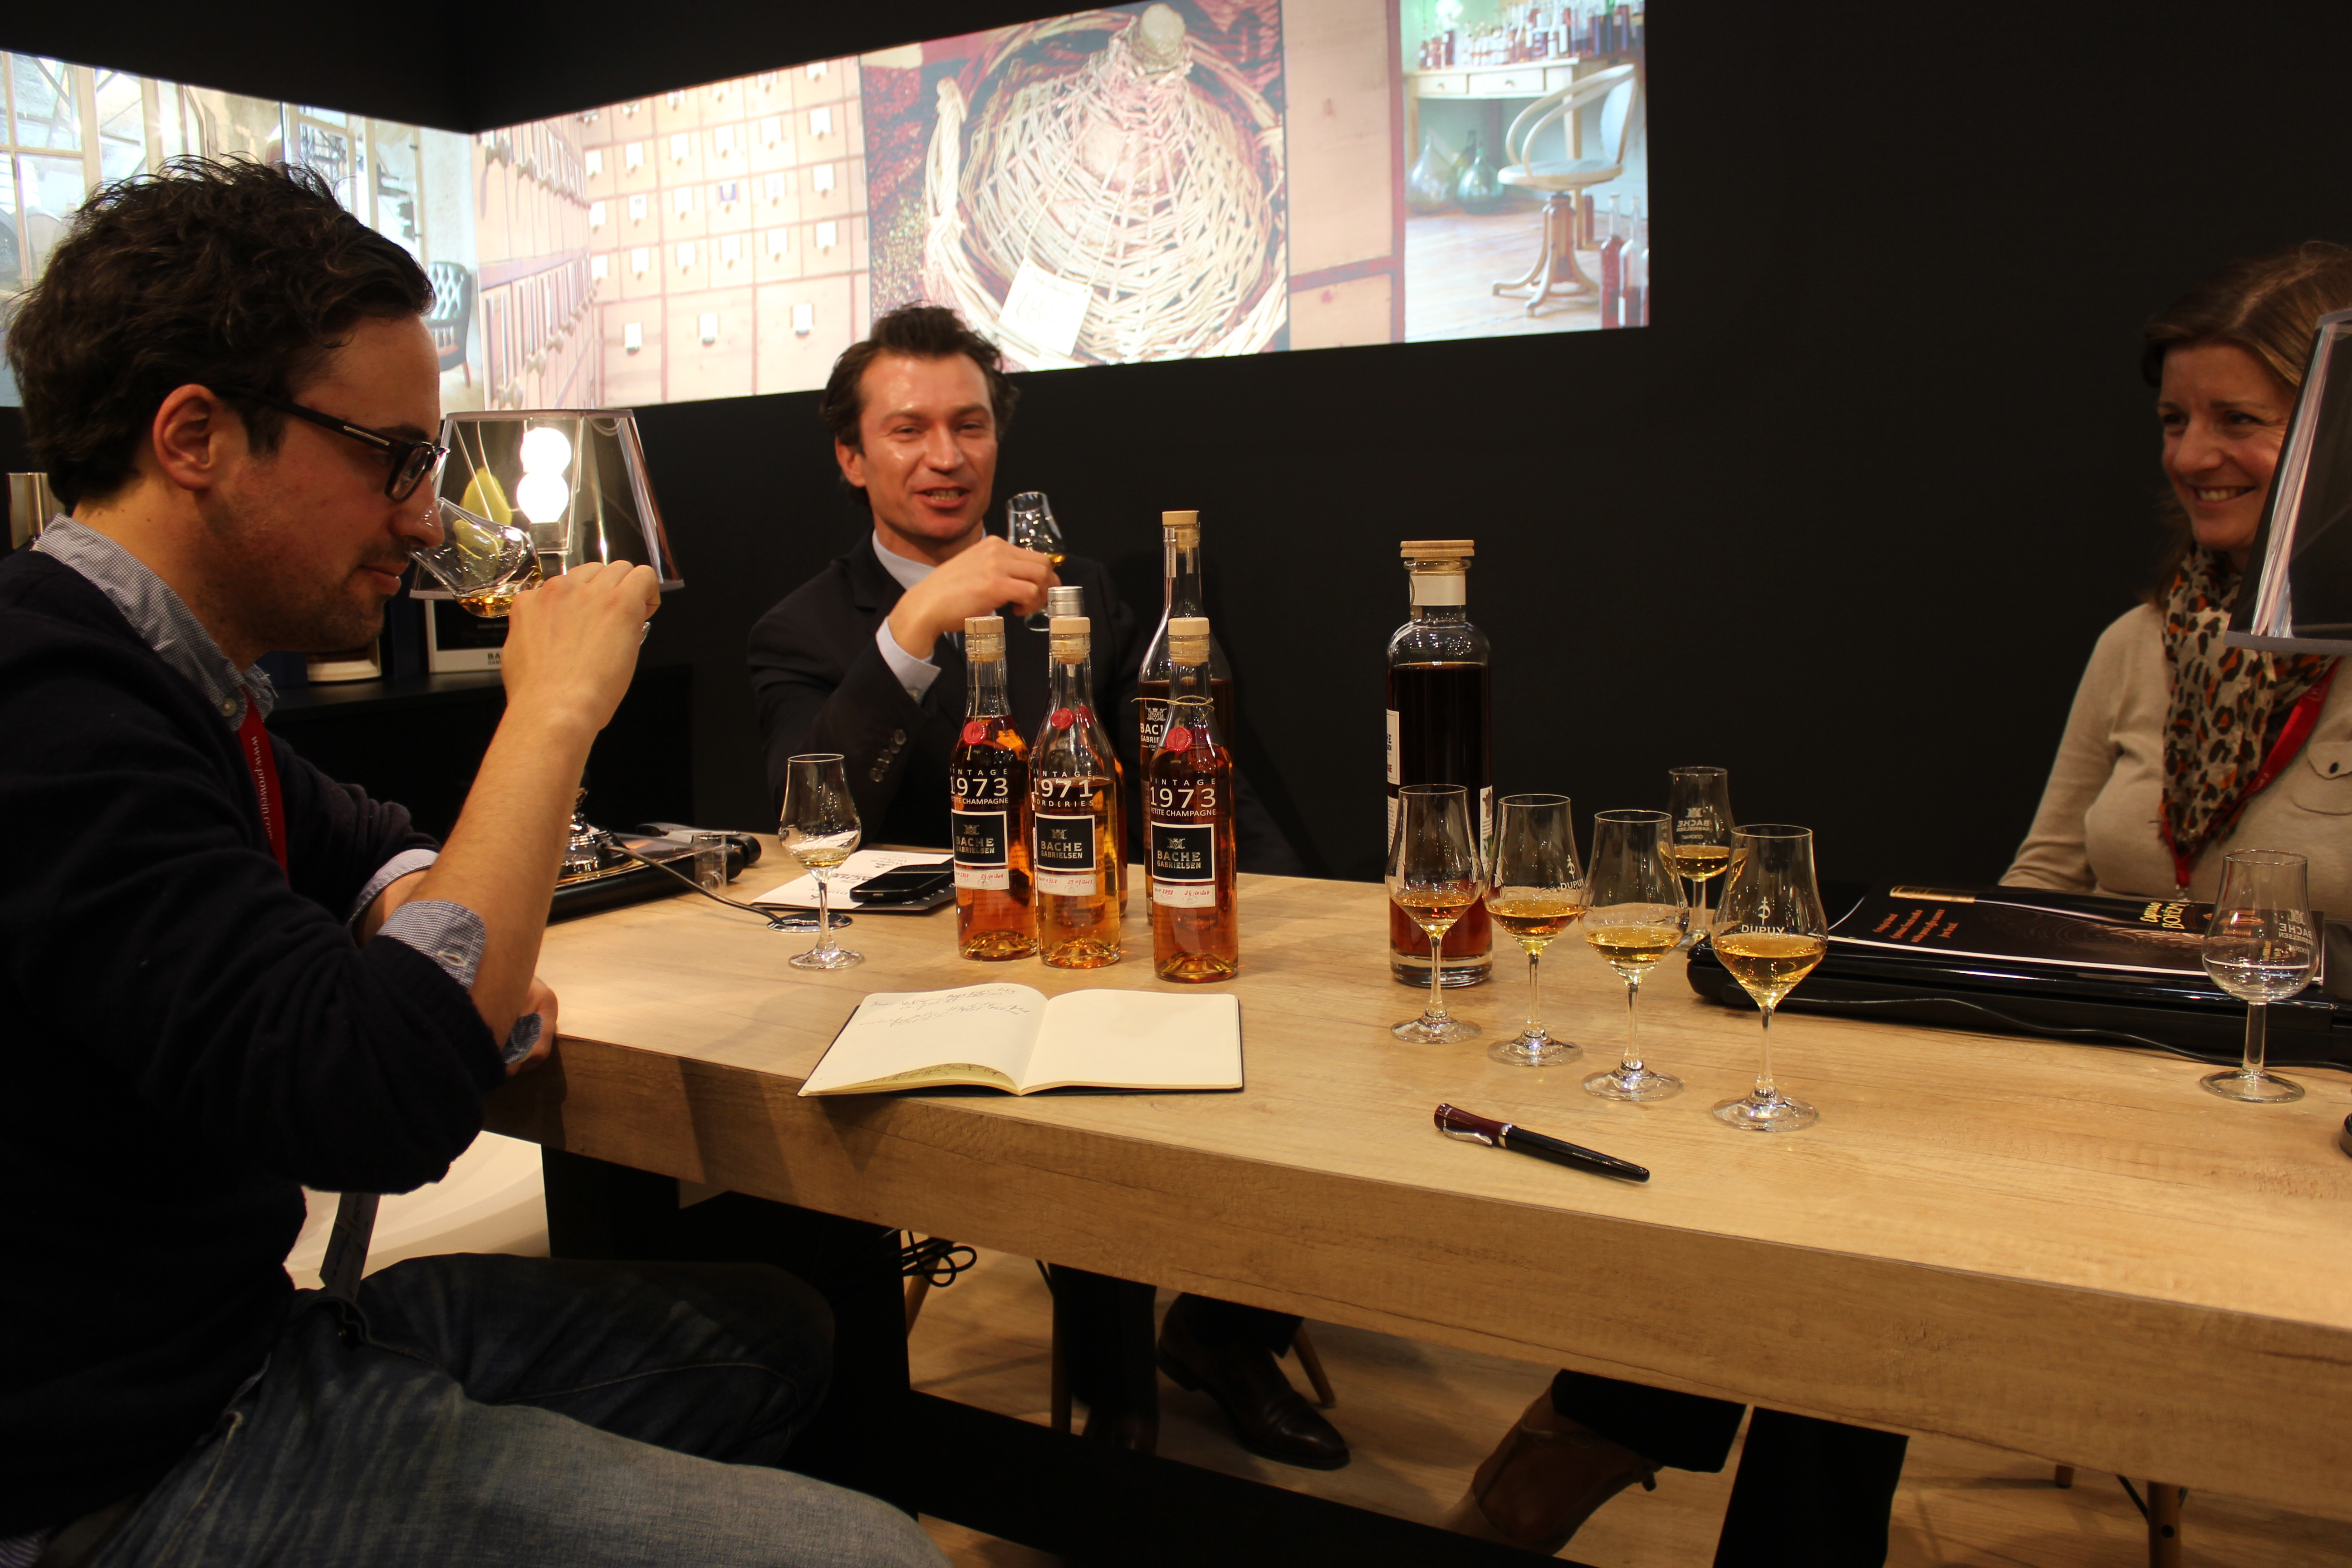 Tasting at the booth of Bache-Gabrielsen